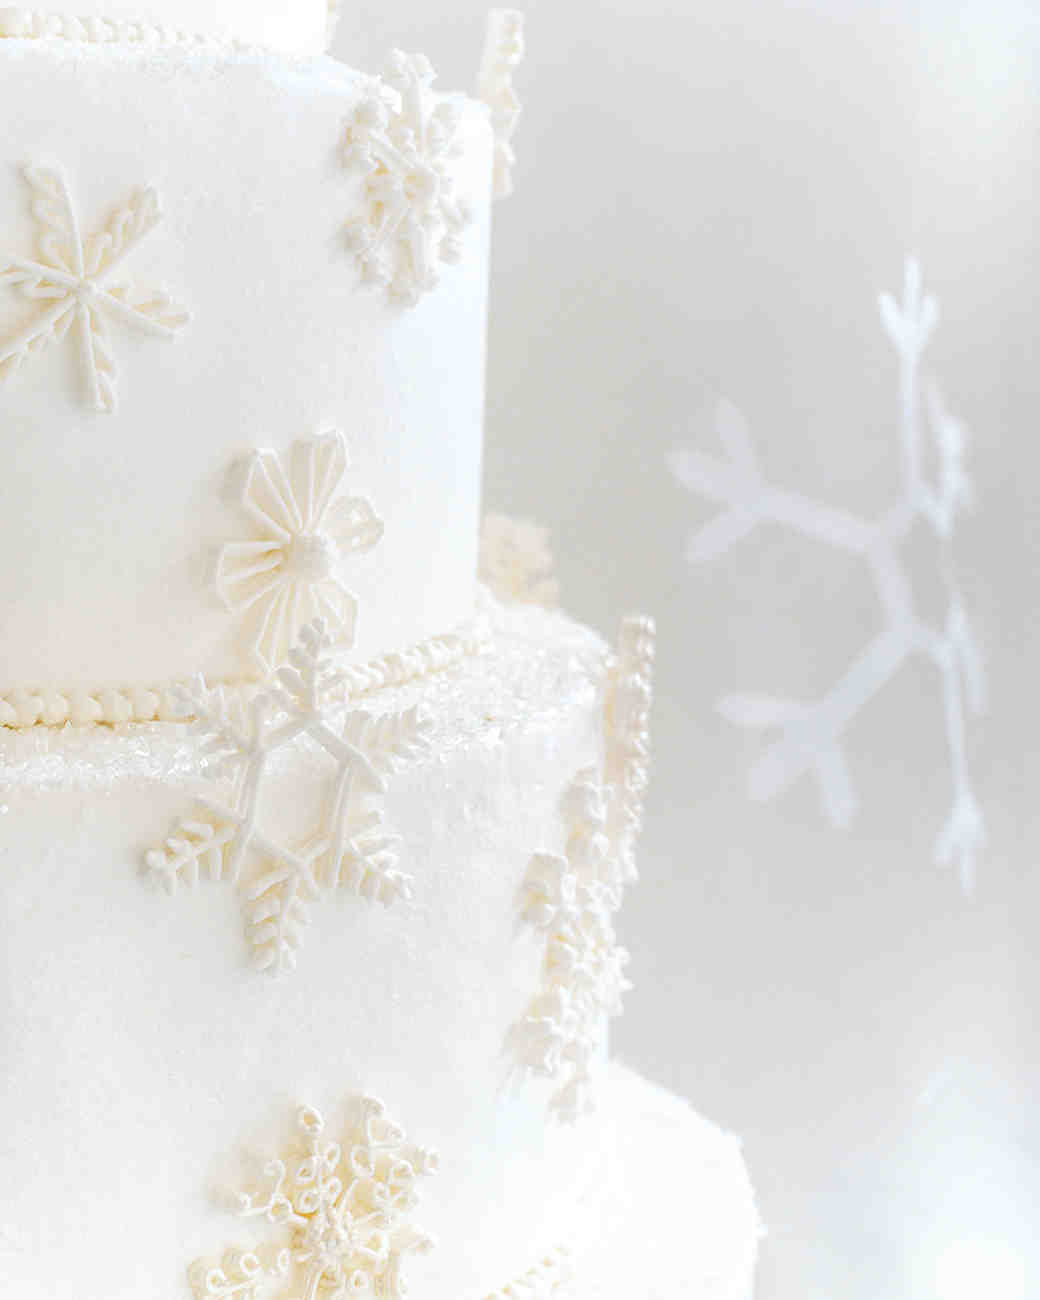 diy-winter-wedding-ideas-snowflake-cake-decoration-1114.jpg